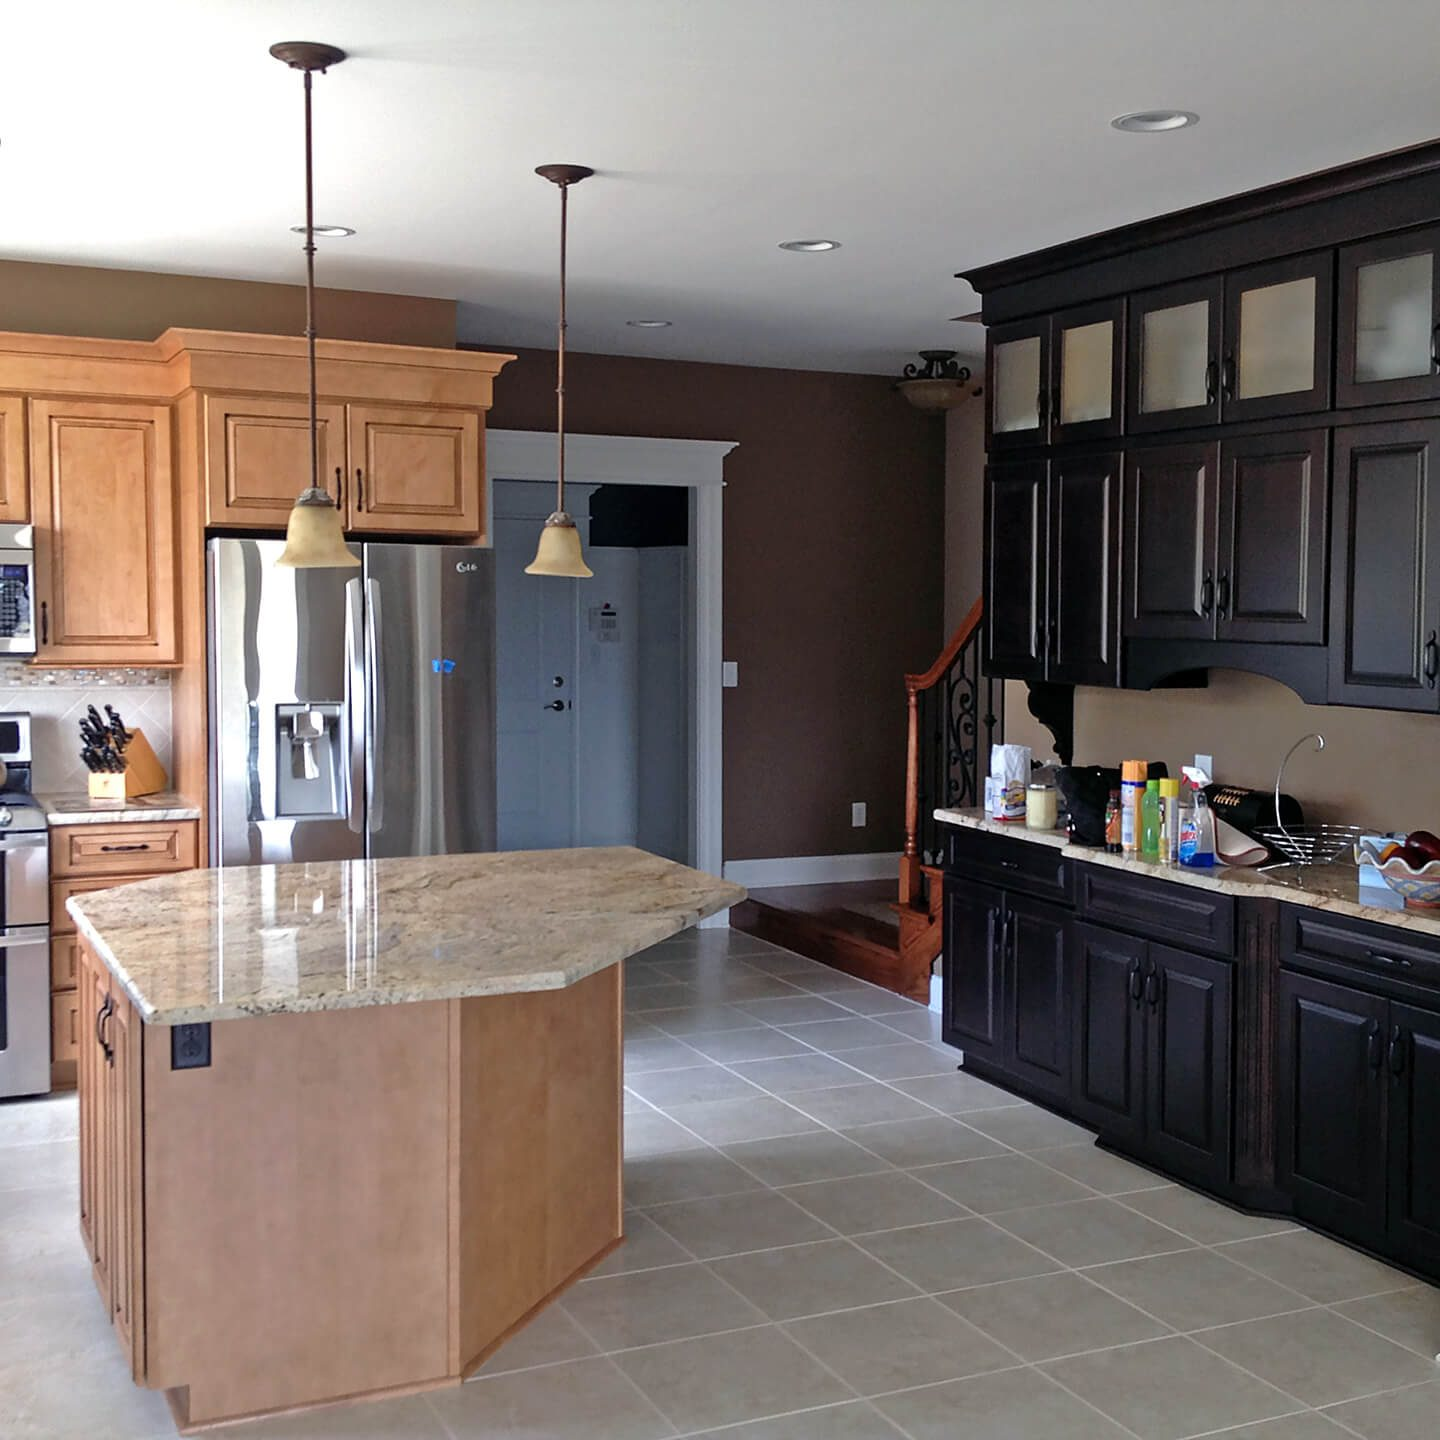 Kinetic Kitchen and Bath Gallery Photo - Kitchen remodel design 9